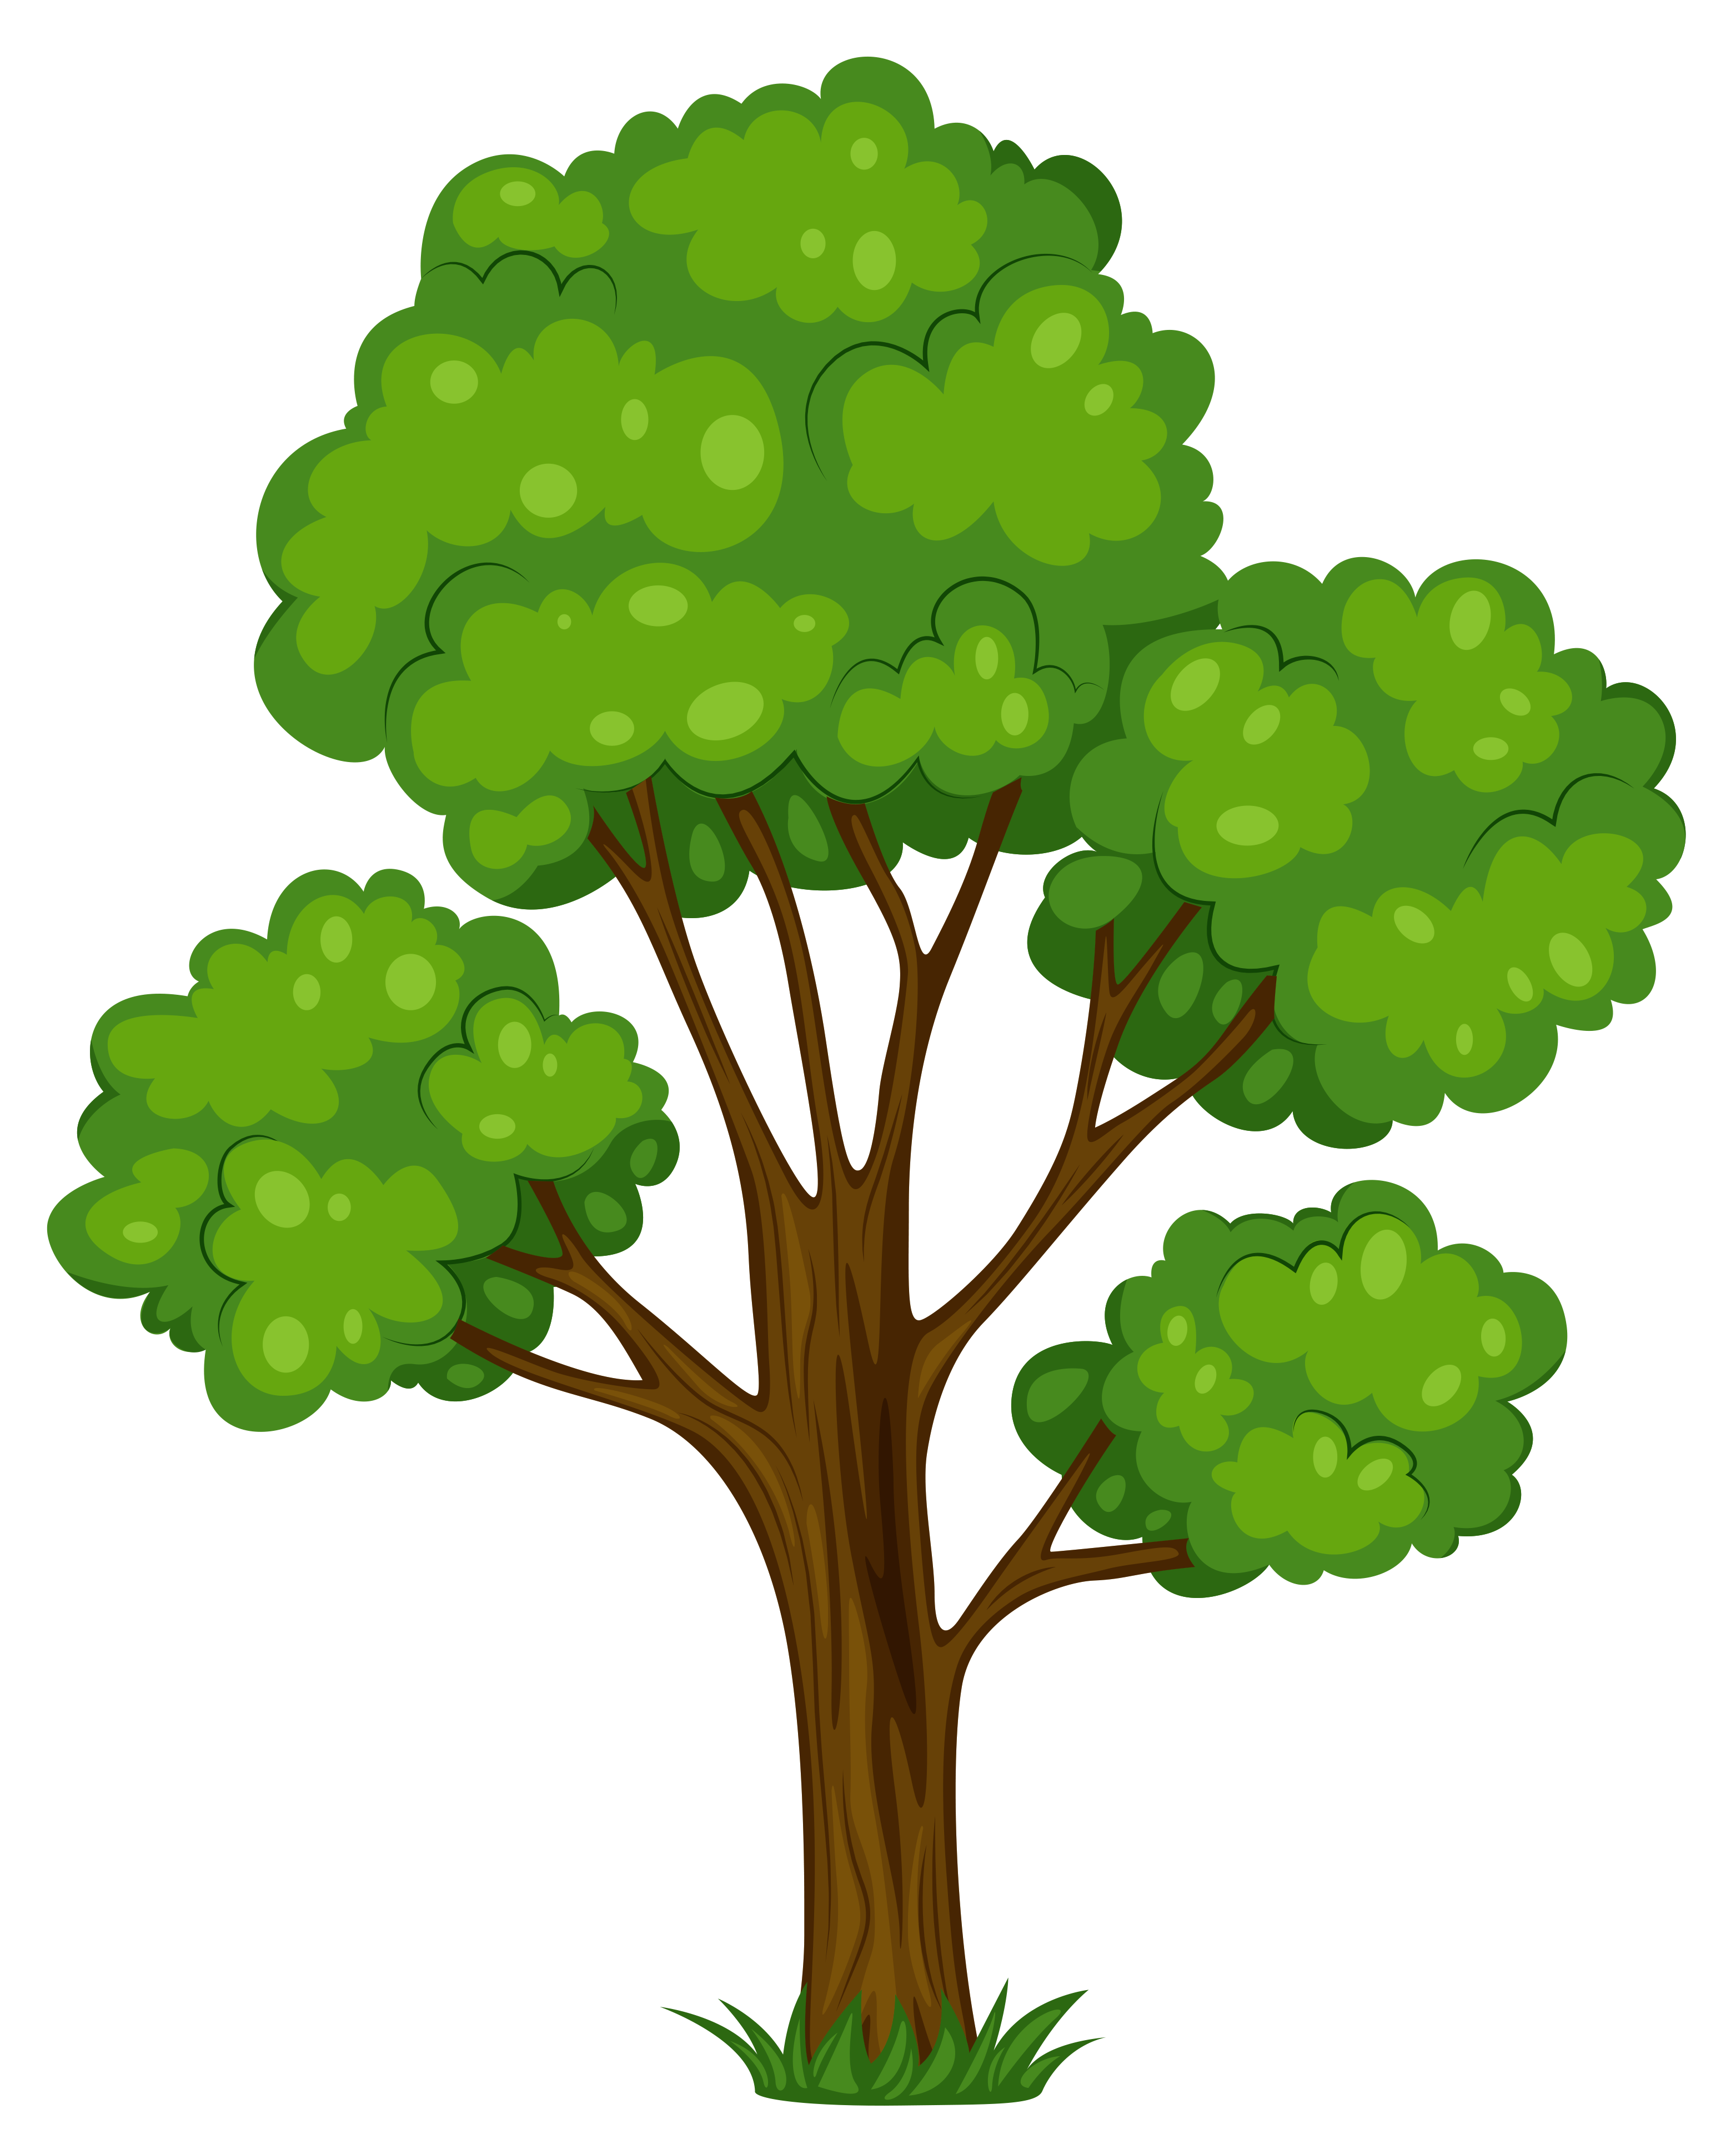 Tree illustration png. Painted green clipart picture